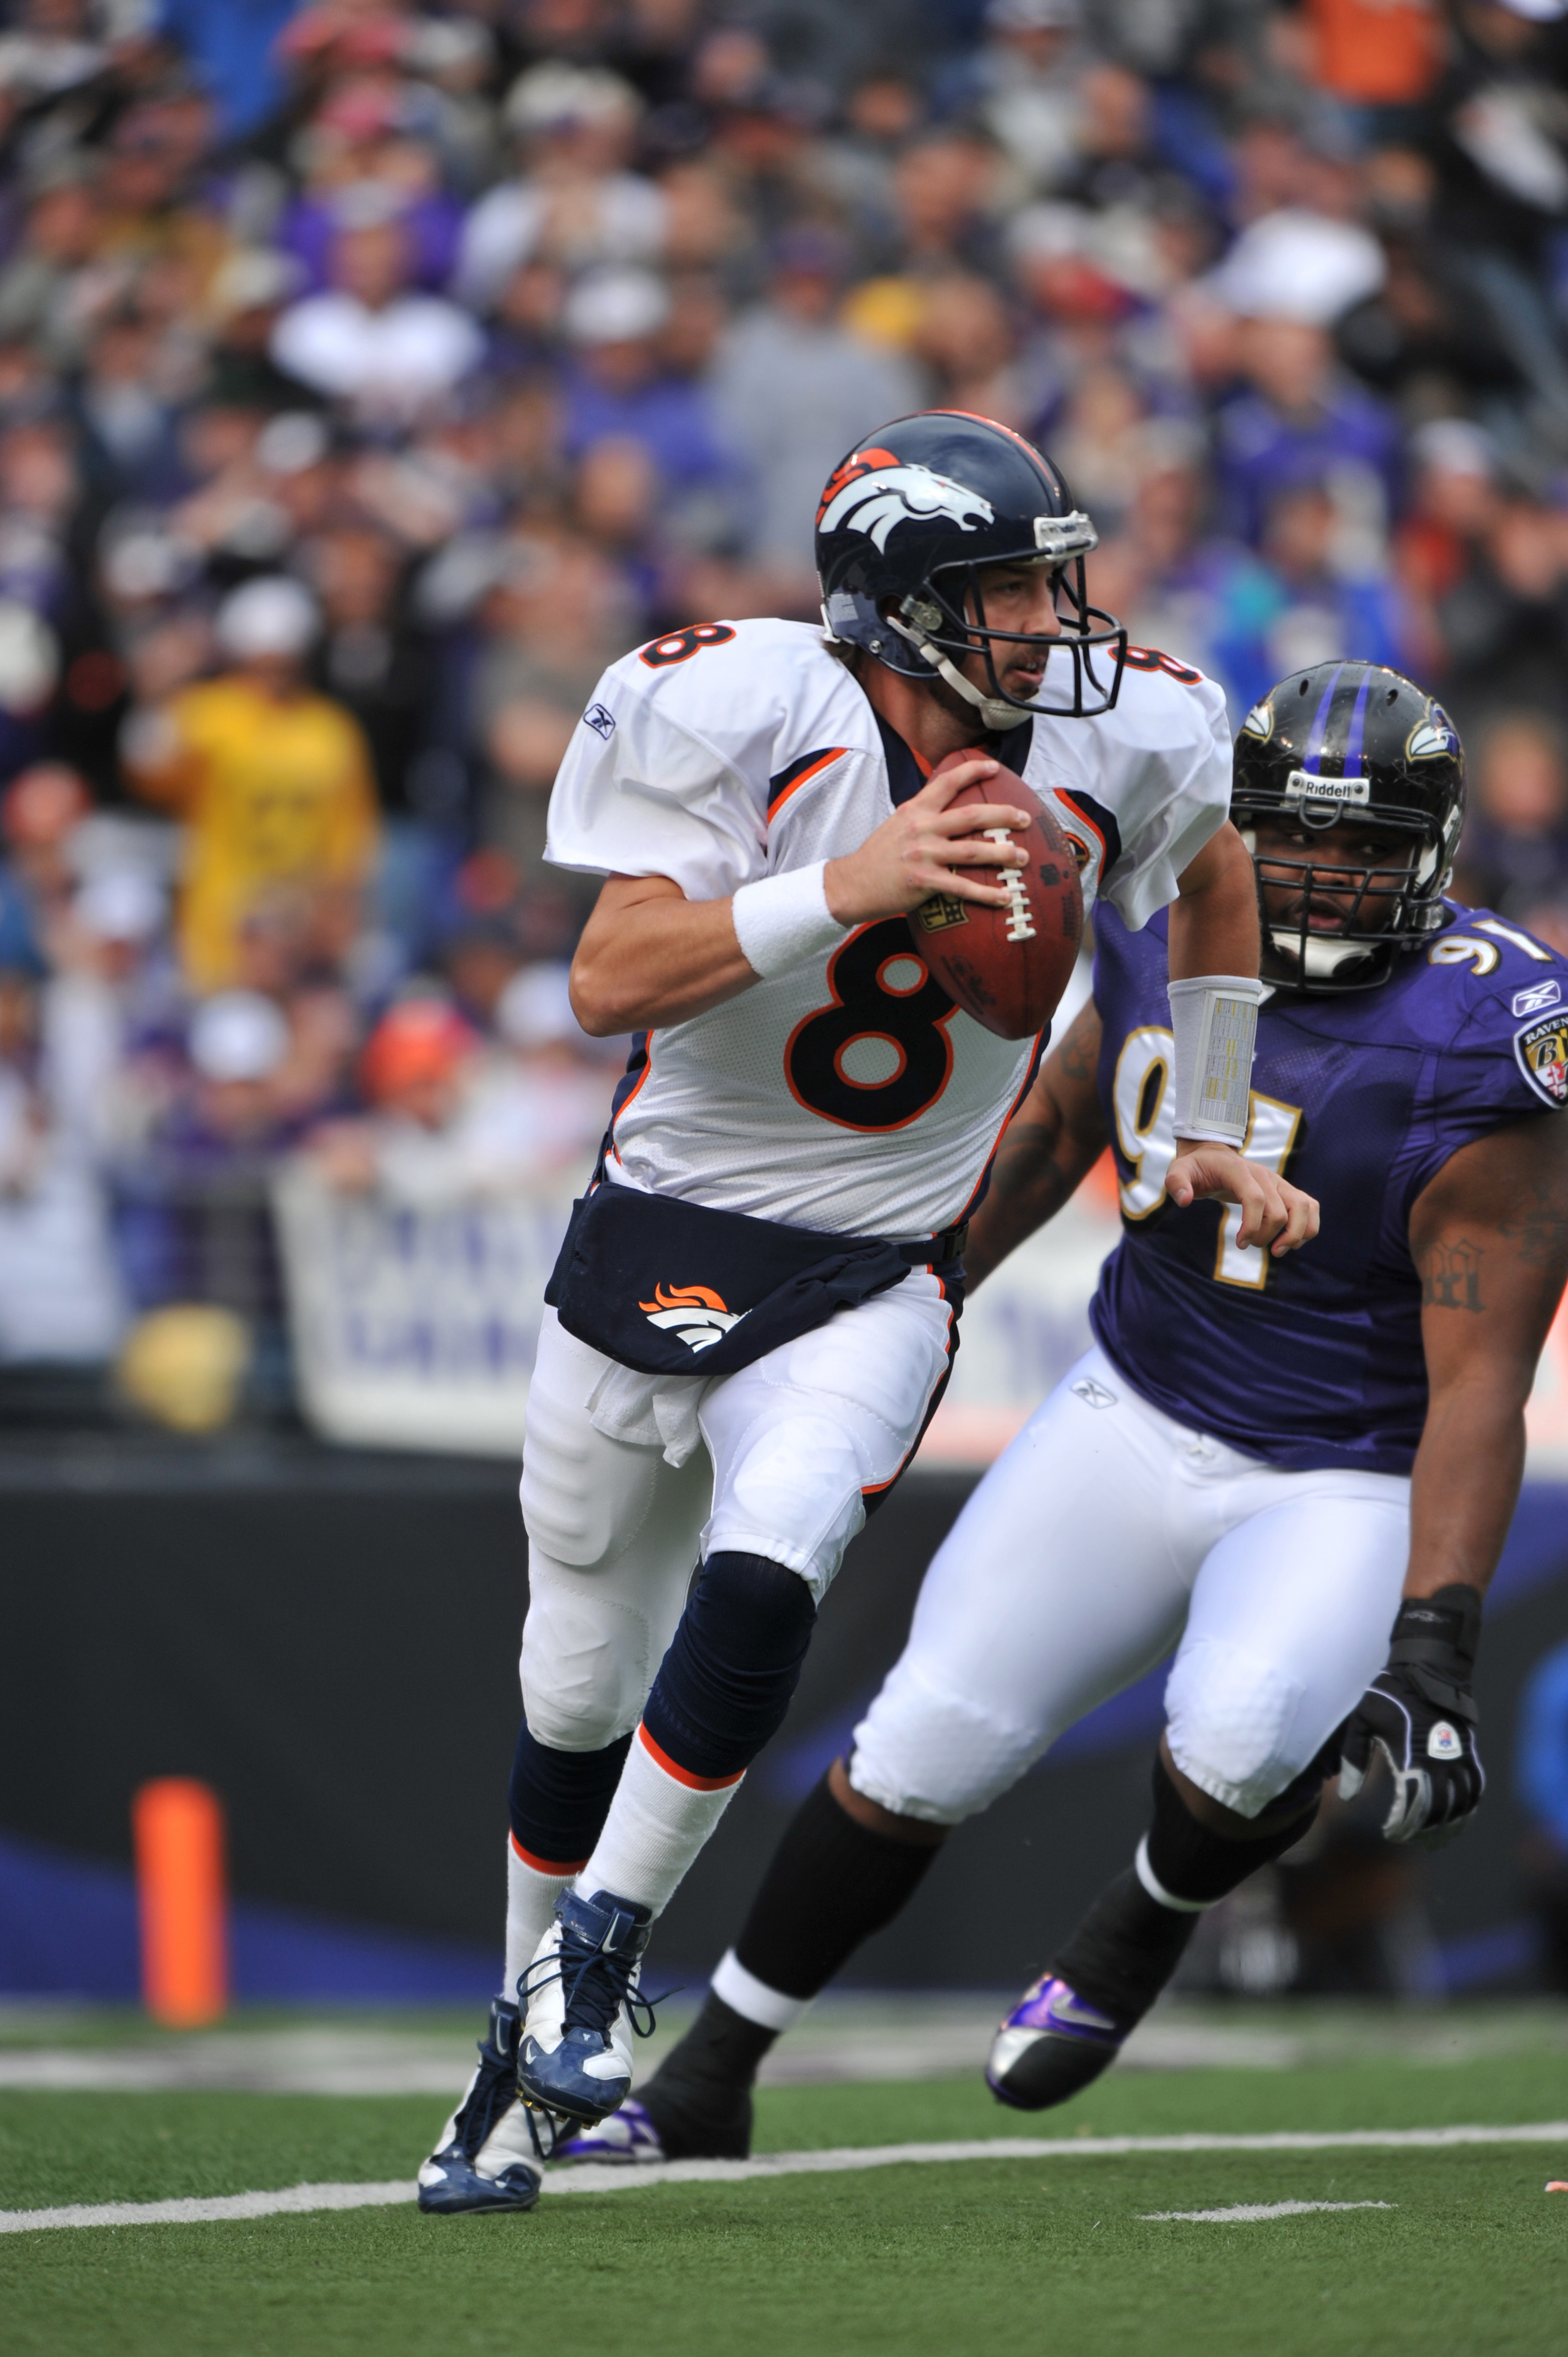 BALTIMORE - NOVEMBER 1: Kyle Orton #8 of the Denver Broncos looks for a receiver during the game against the Baltimore Ravens at M&T Bank Stadium on November 1, 2009 in Baltimore, Maryland. (Photo by Larry French/Getty Images)